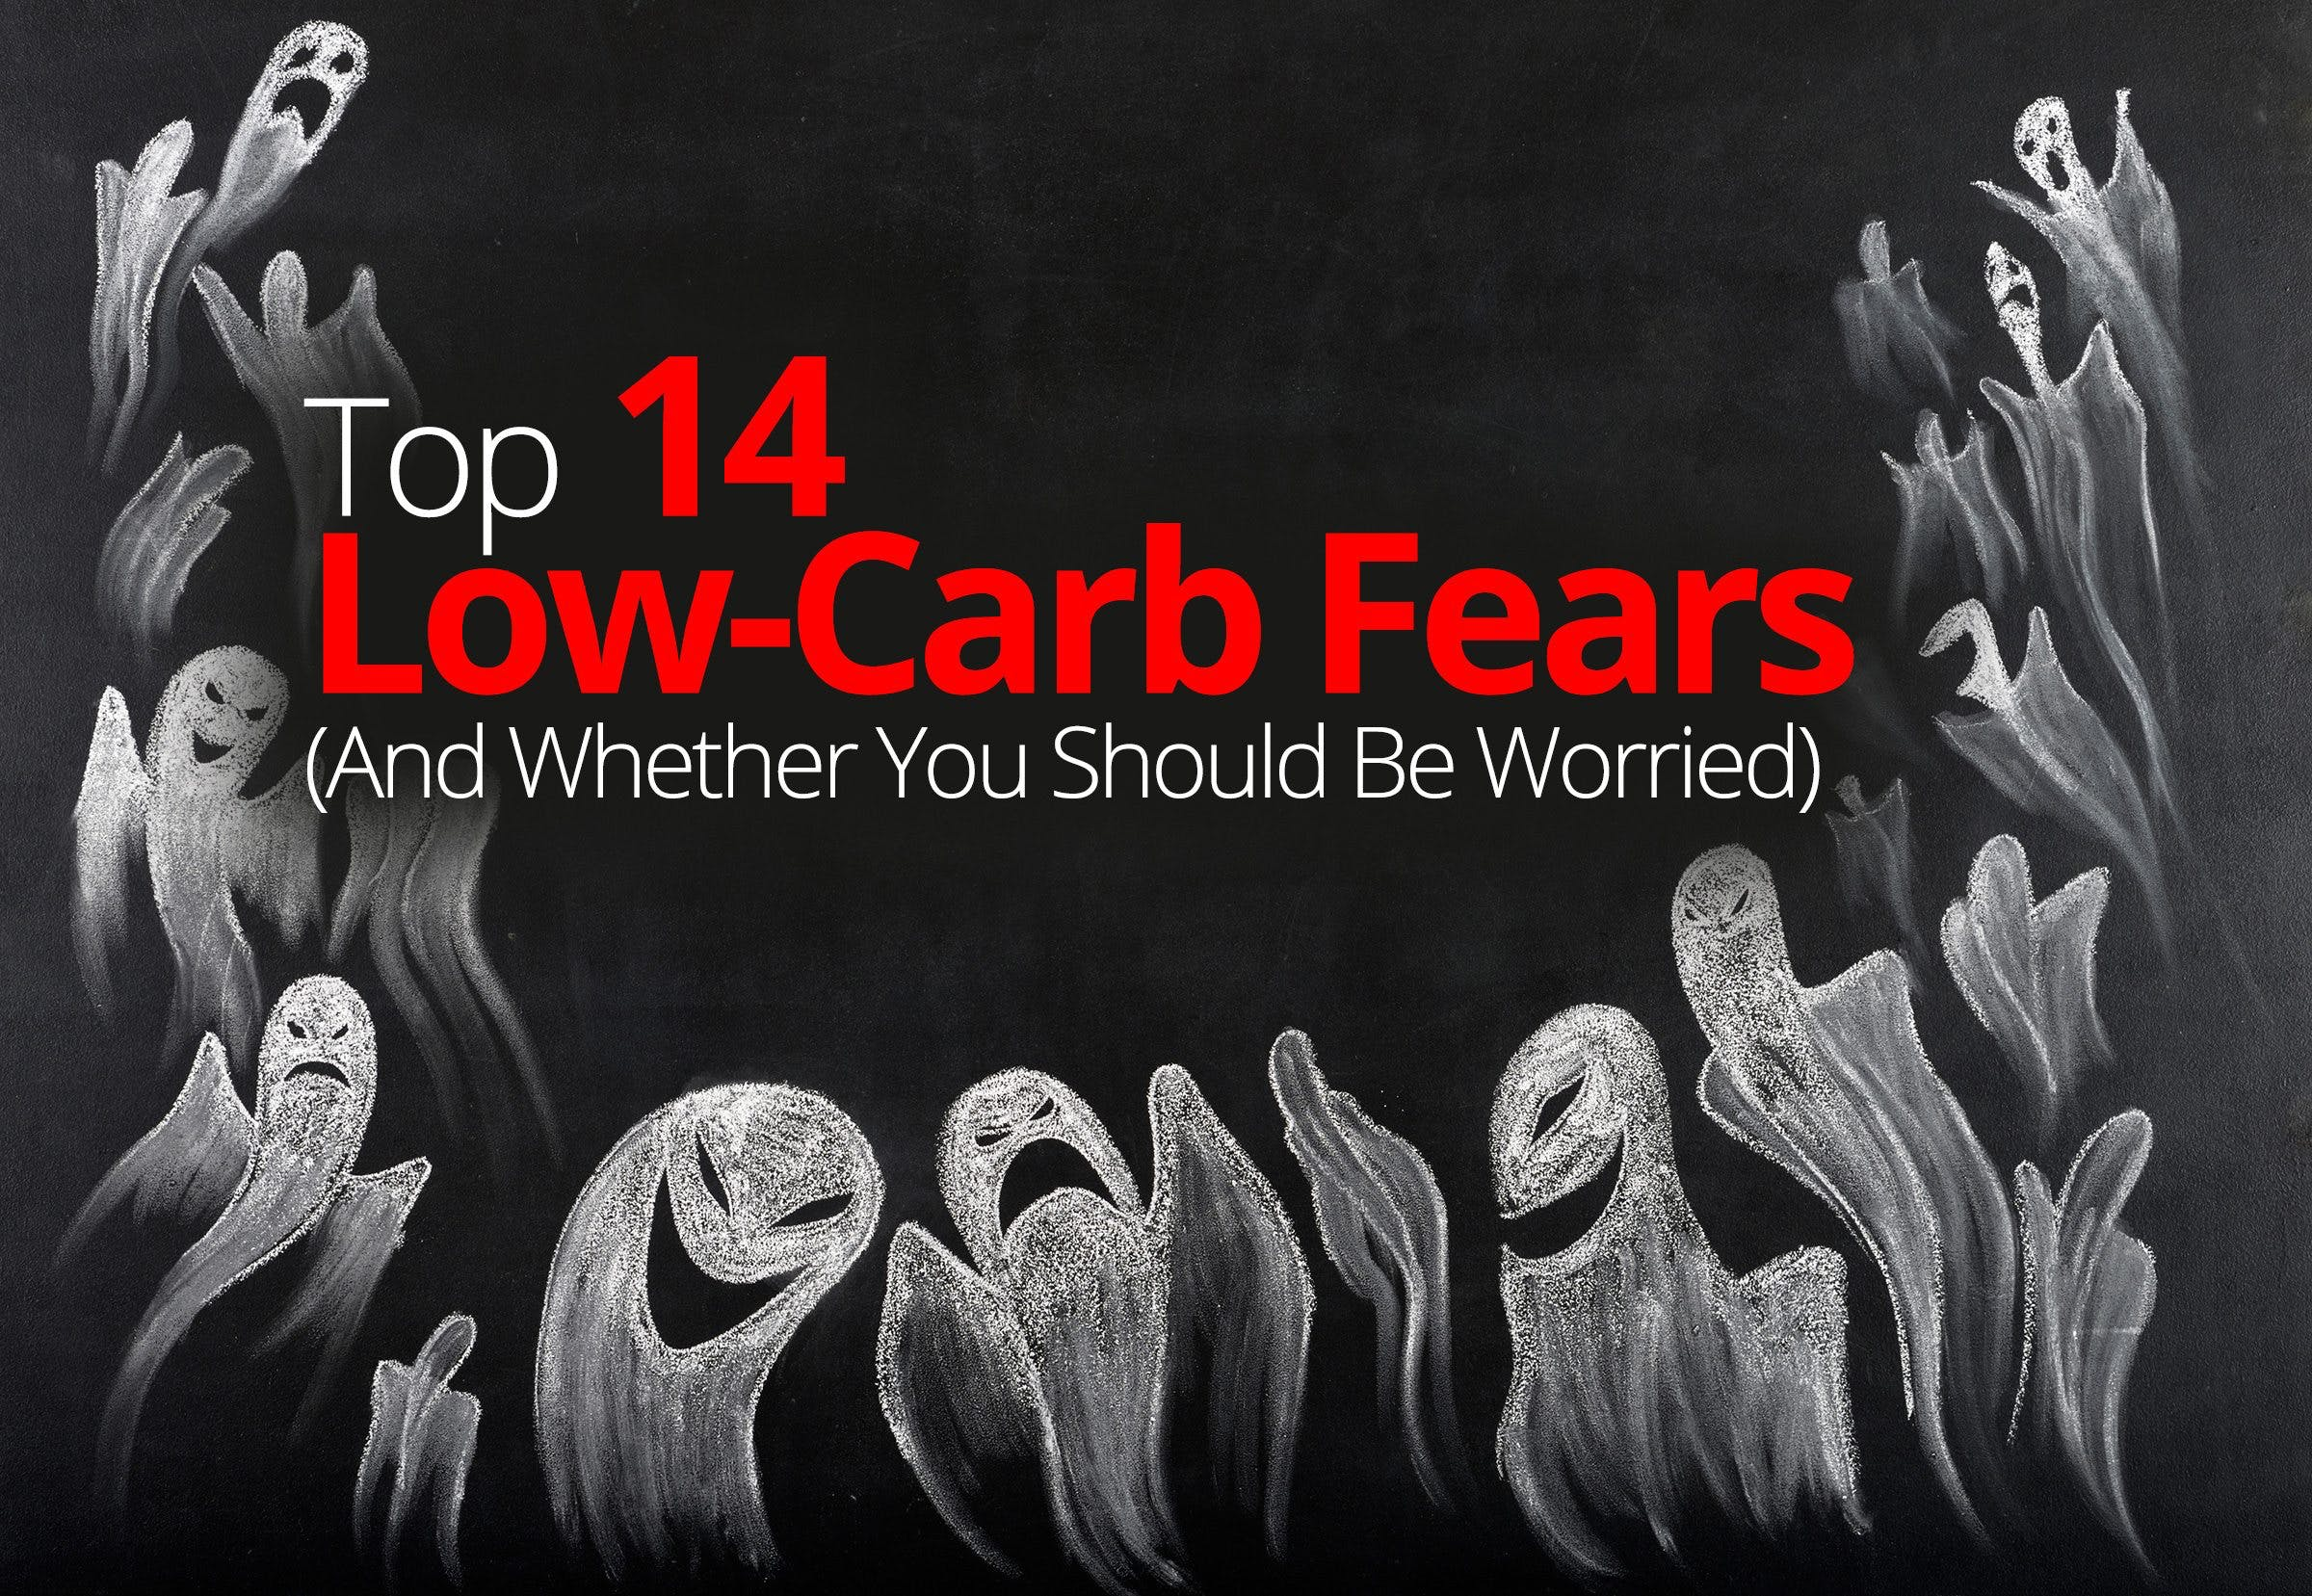 Top 14 low-carb fears